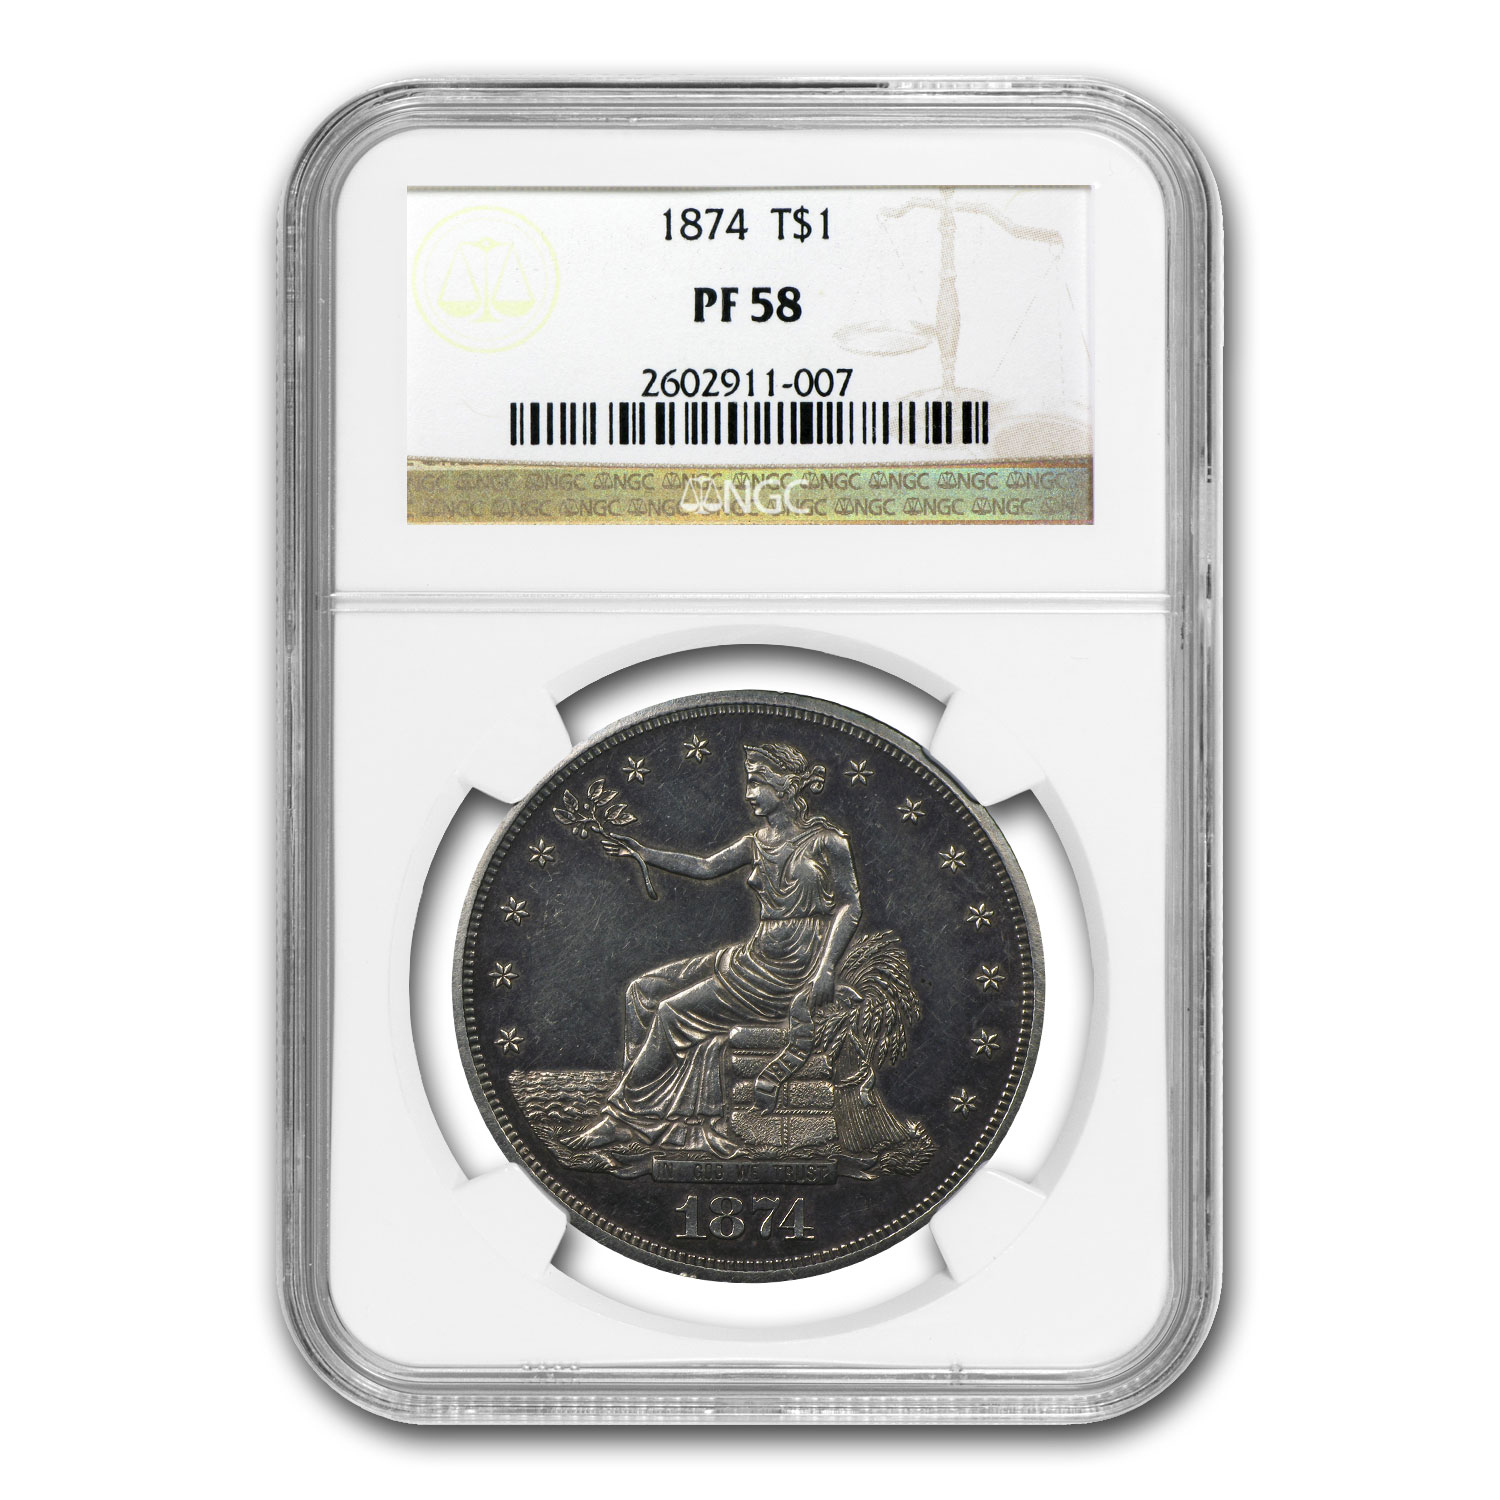 1874 Trade Dollar PF-58 NGC - Proof